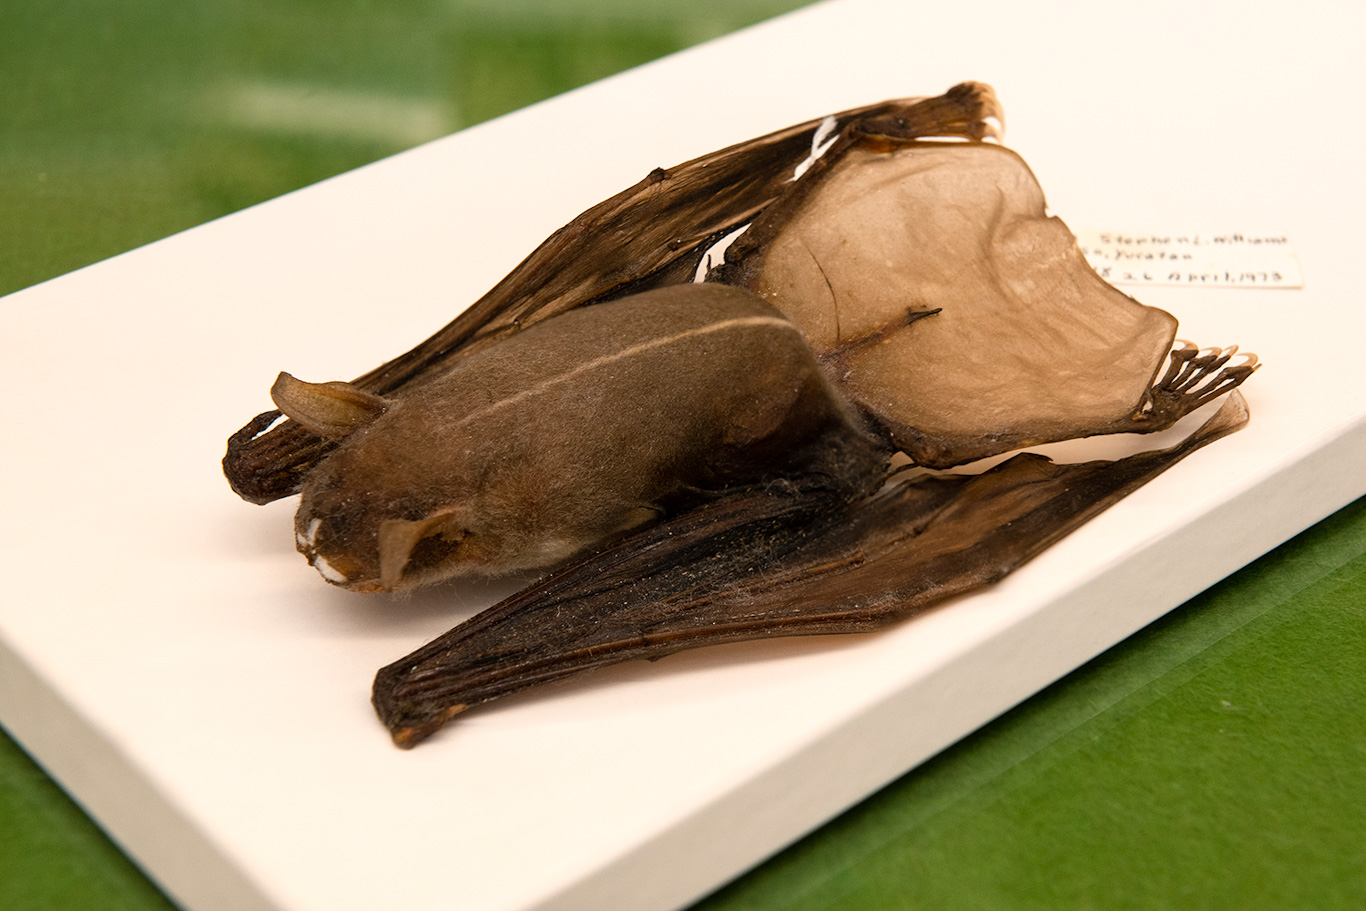 Fishing bat specimen